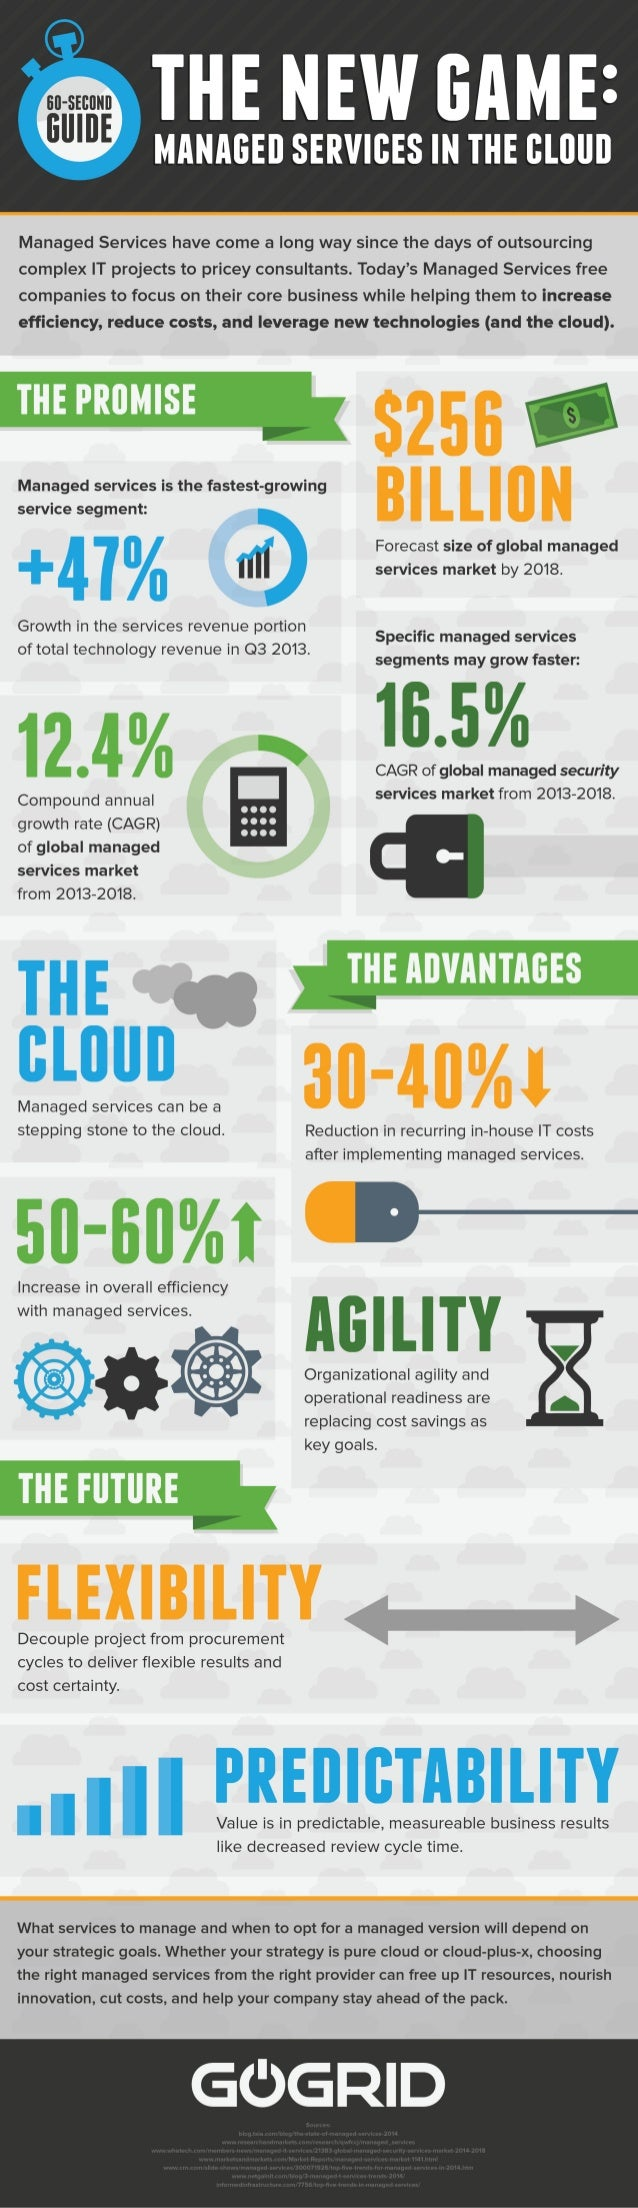 60 Second Guide: The New Game: Managed Services in the Cloud